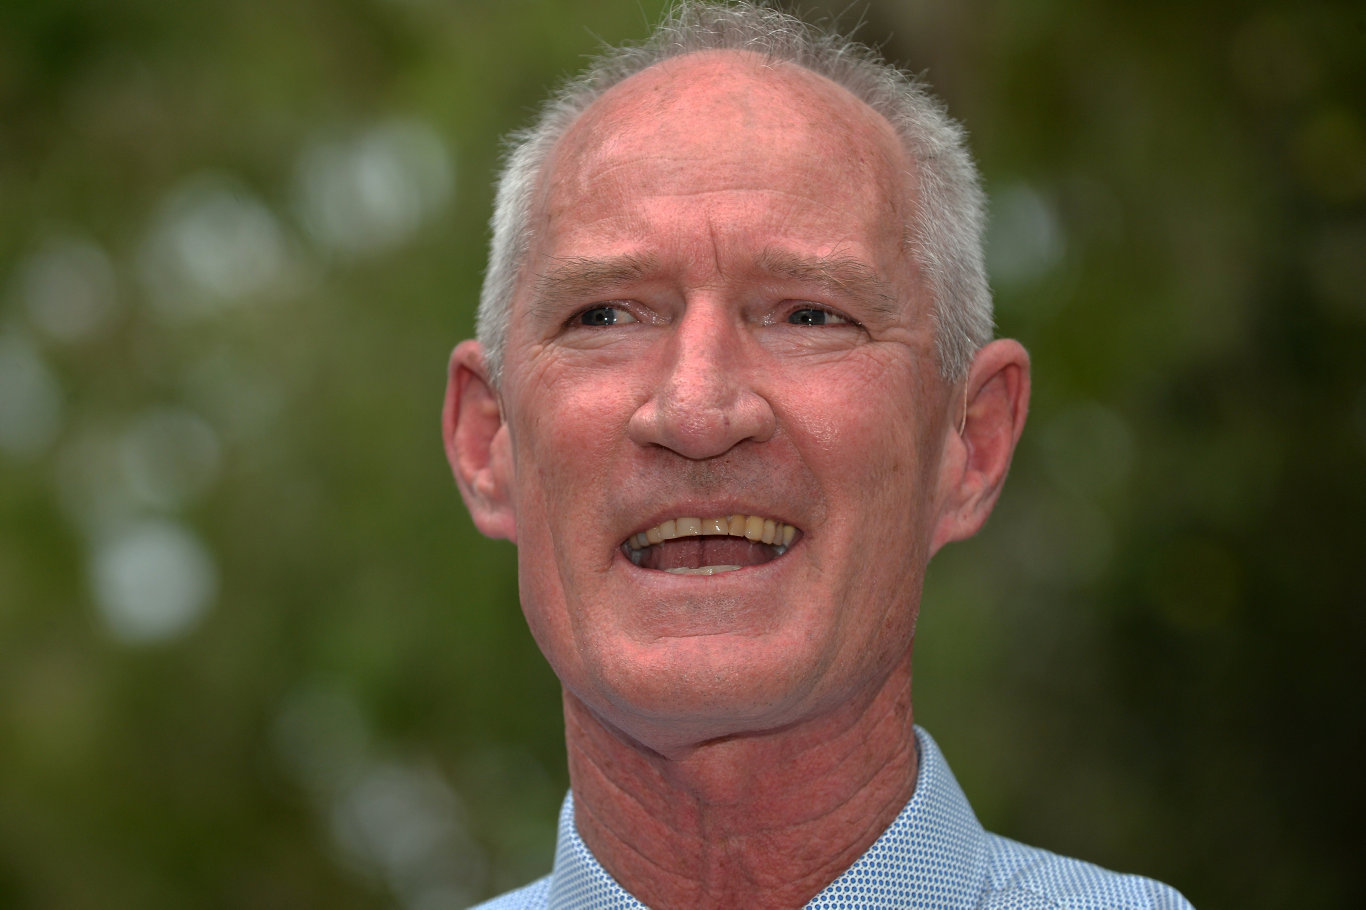 Steve Dickson has put his hand up to run for Division 7 in the upcoming Sunshine Coast Council election.